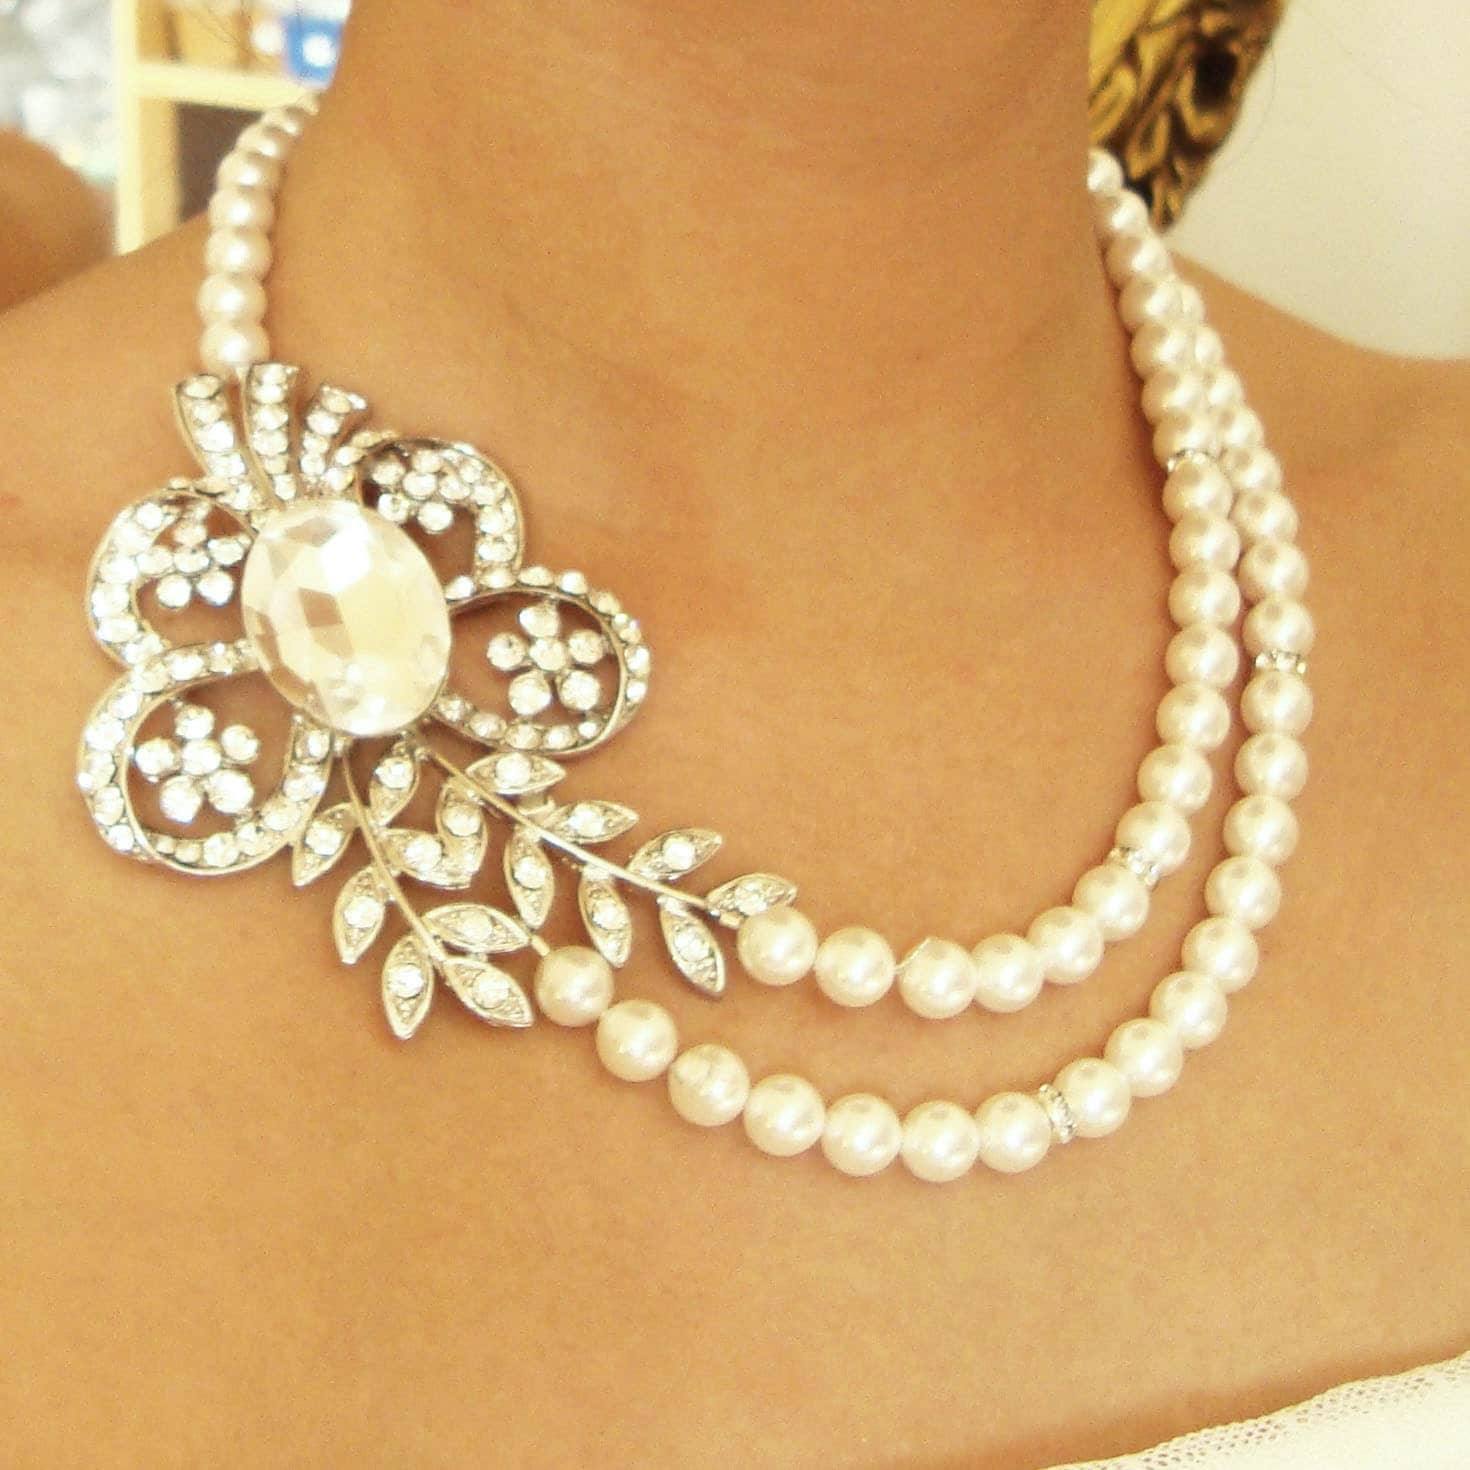 Pearl bridal necklace vintage wedding jewelry art deco for Wedding ring necklace